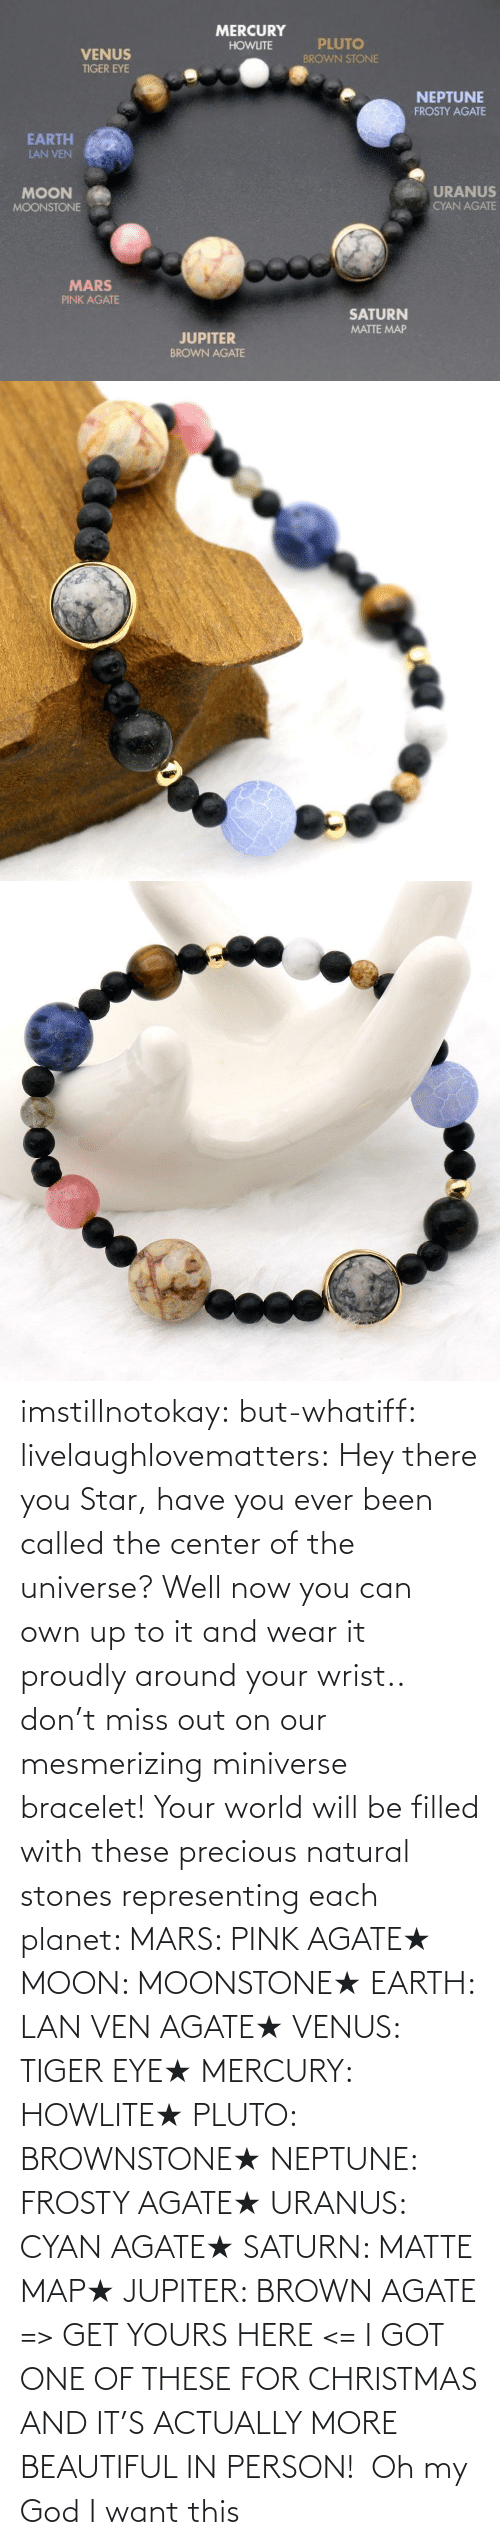 stones: imstillnotokay:  but-whatiff: livelaughlovematters:  Hey there you Star, have you ever been called the center of the universe? Well now you can own up to it and wear it proudly around your wrist.. don't miss out on our mesmerizing miniverse bracelet! Your world will be filled with these precious natural stones representing each planet:  MARS: PINK AGATE★ MOON: MOONSTONE★ EARTH: LAN VEN AGATE★ VENUS: TIGER EYE★ MERCURY: HOWLITE★ PLUTO: BROWNSTONE★ NEPTUNE: FROSTY AGATE★ URANUS: CYAN AGATE★ SATURN: MATTE MAP★ JUPITER: BROWN AGATE => GET YOURS HERE <=  I GOT ONE OF THESE FOR CHRISTMAS AND IT'S ACTUALLY MORE BEAUTIFUL IN PERSON!     Oh my God I want this